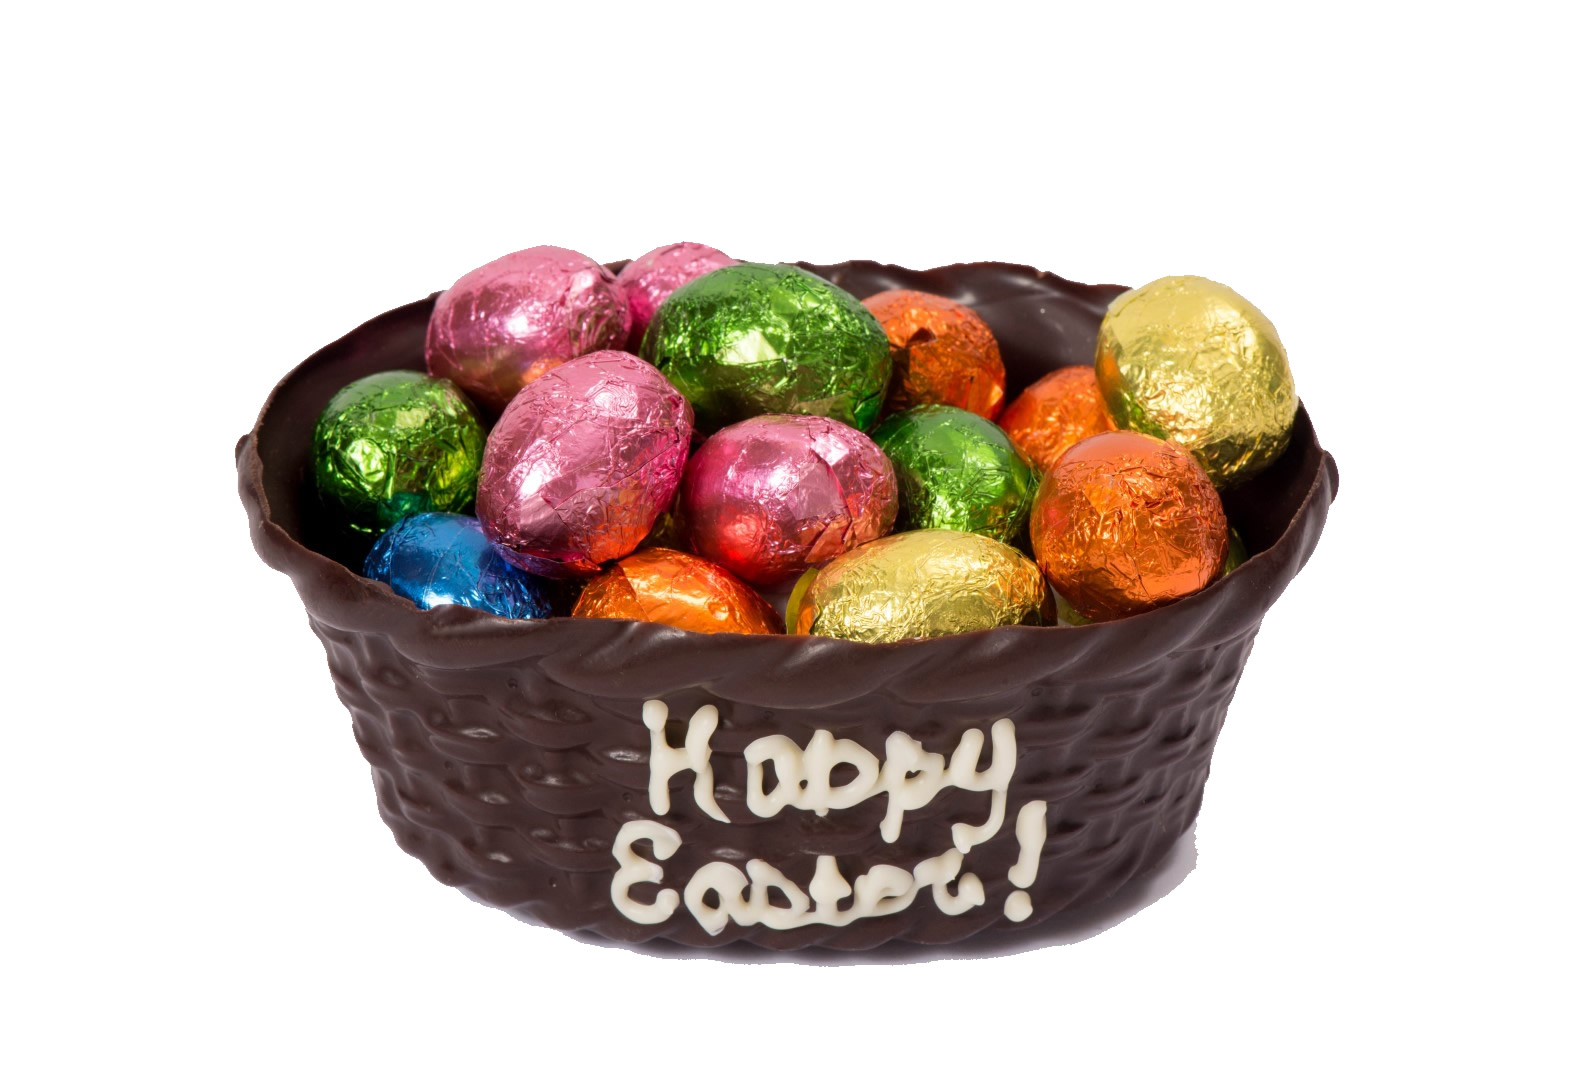 Chocolate Easter Basket Filled Chocolate Eggs